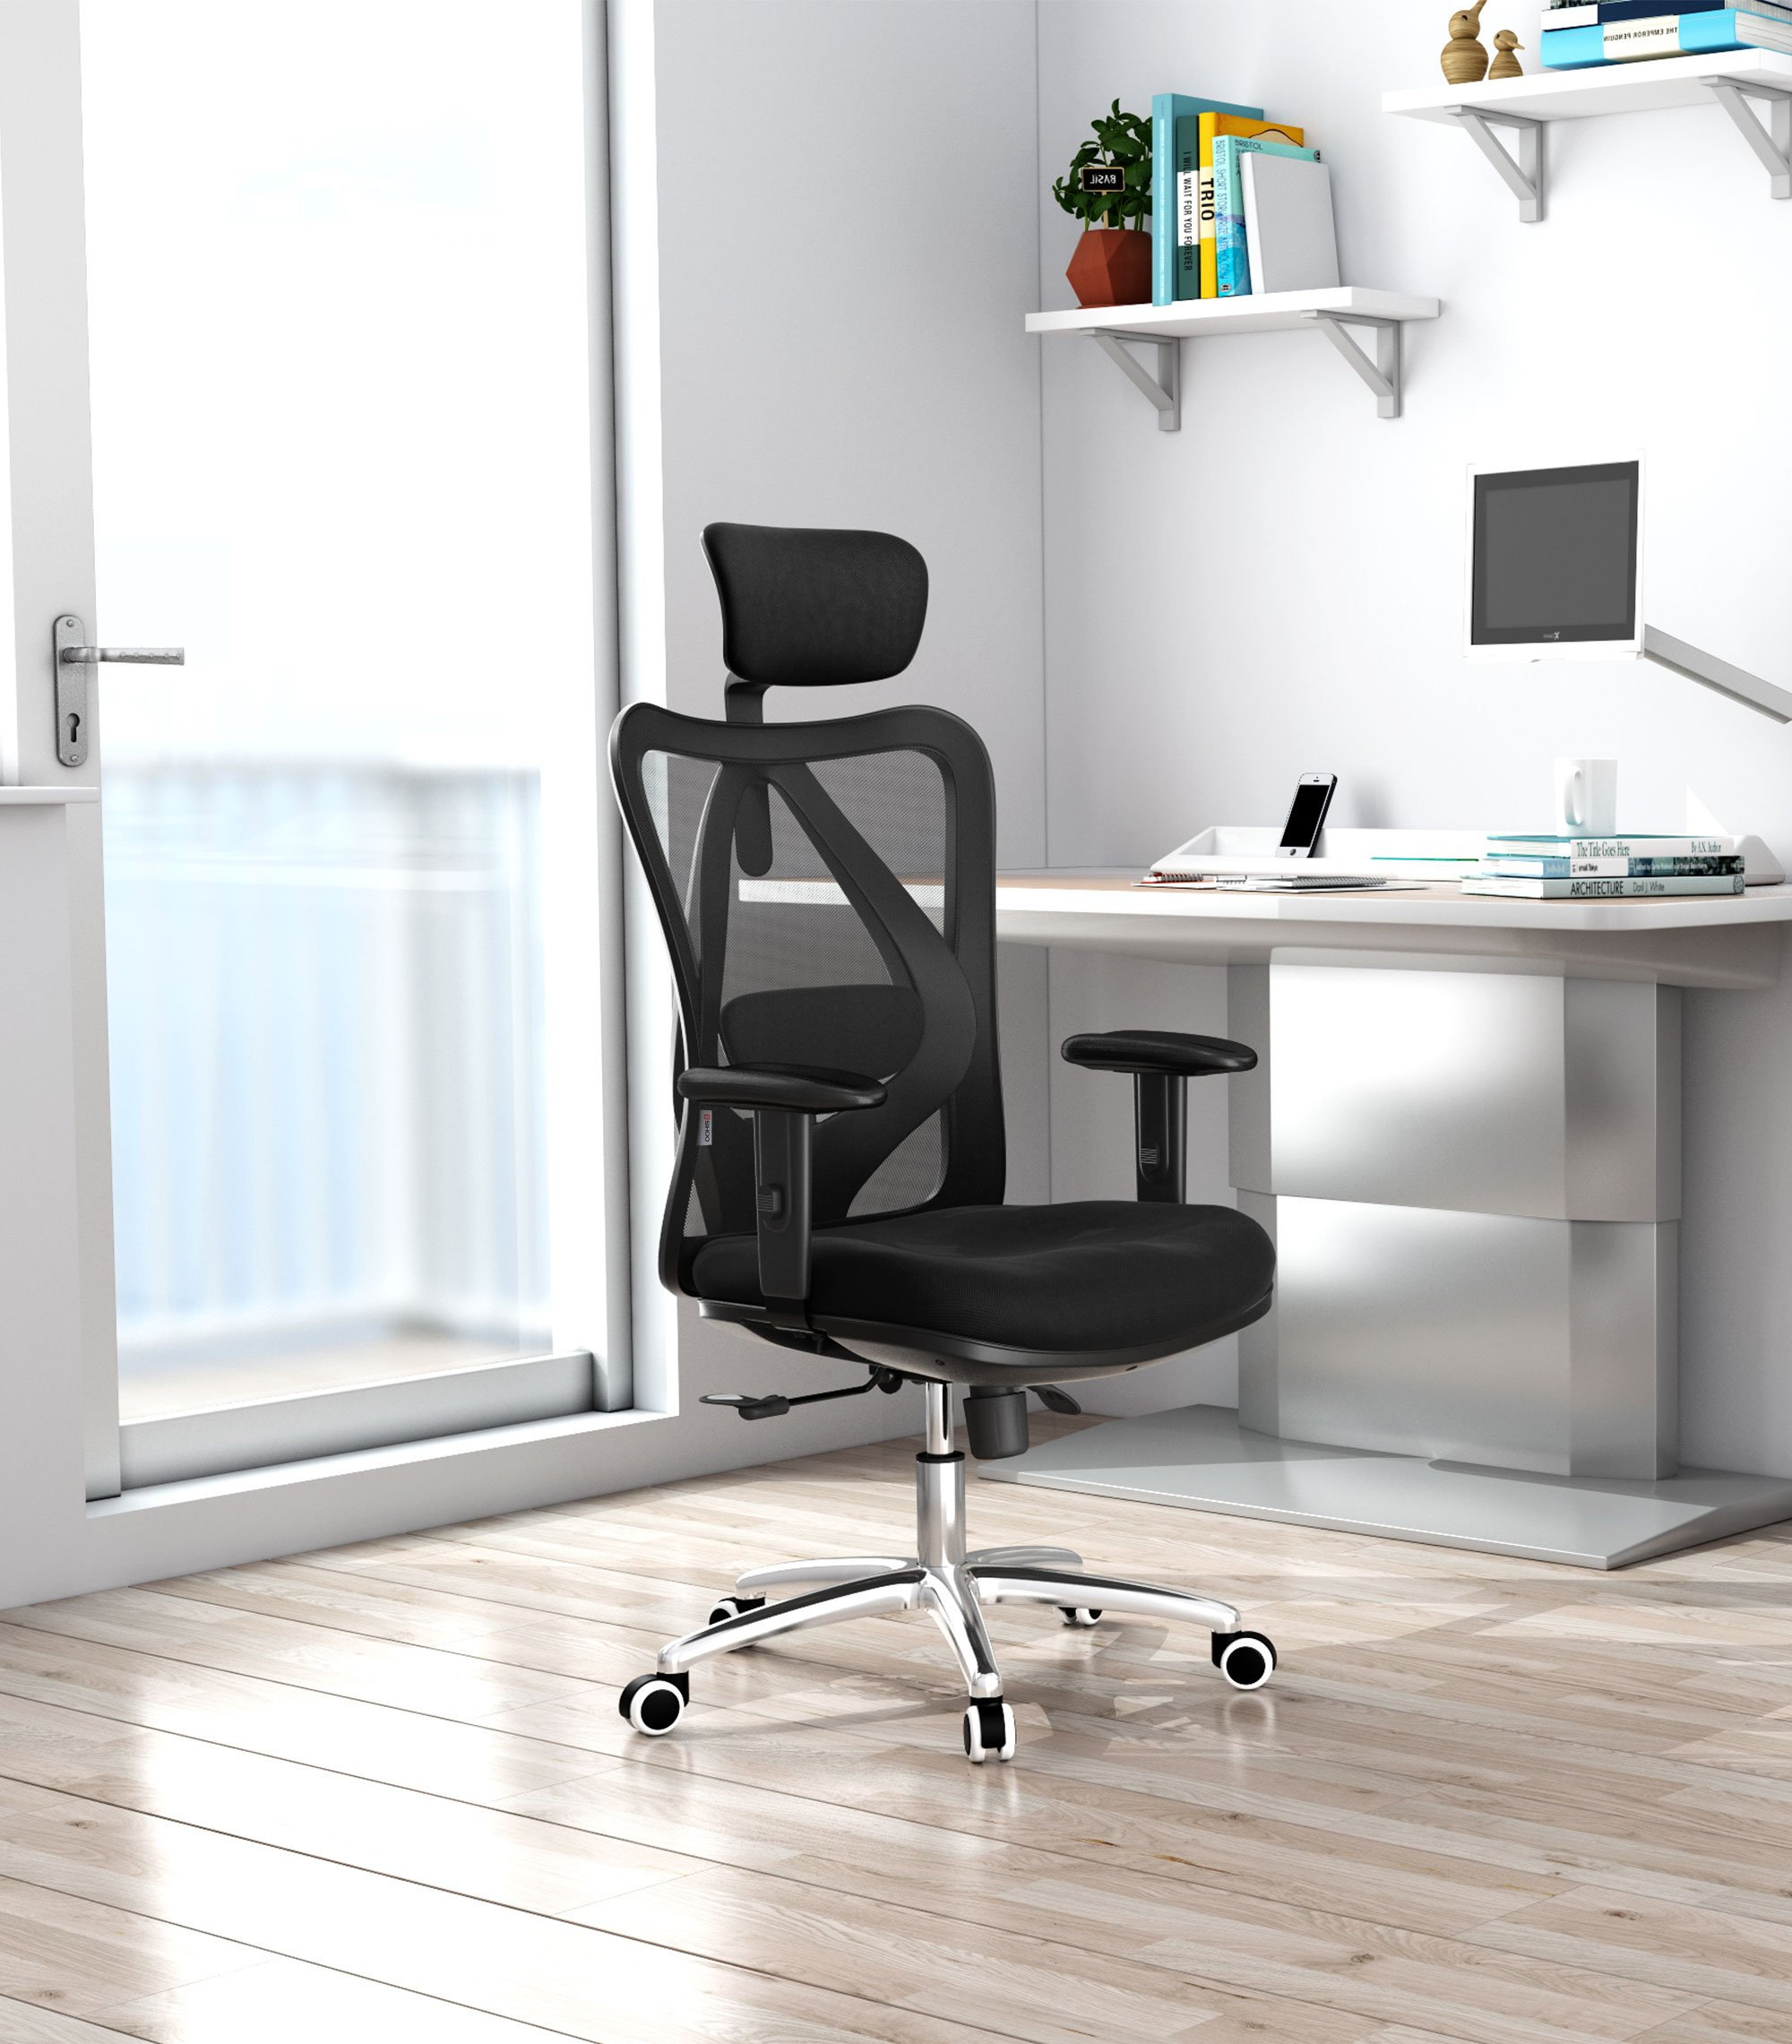 Sihoo Ergonomics Office Chair Computer Chair Desk Chair, Adjustable Headrests Chair Backrest and Armrest's Mesh Chair (Black) by SIHOO (Image #2)